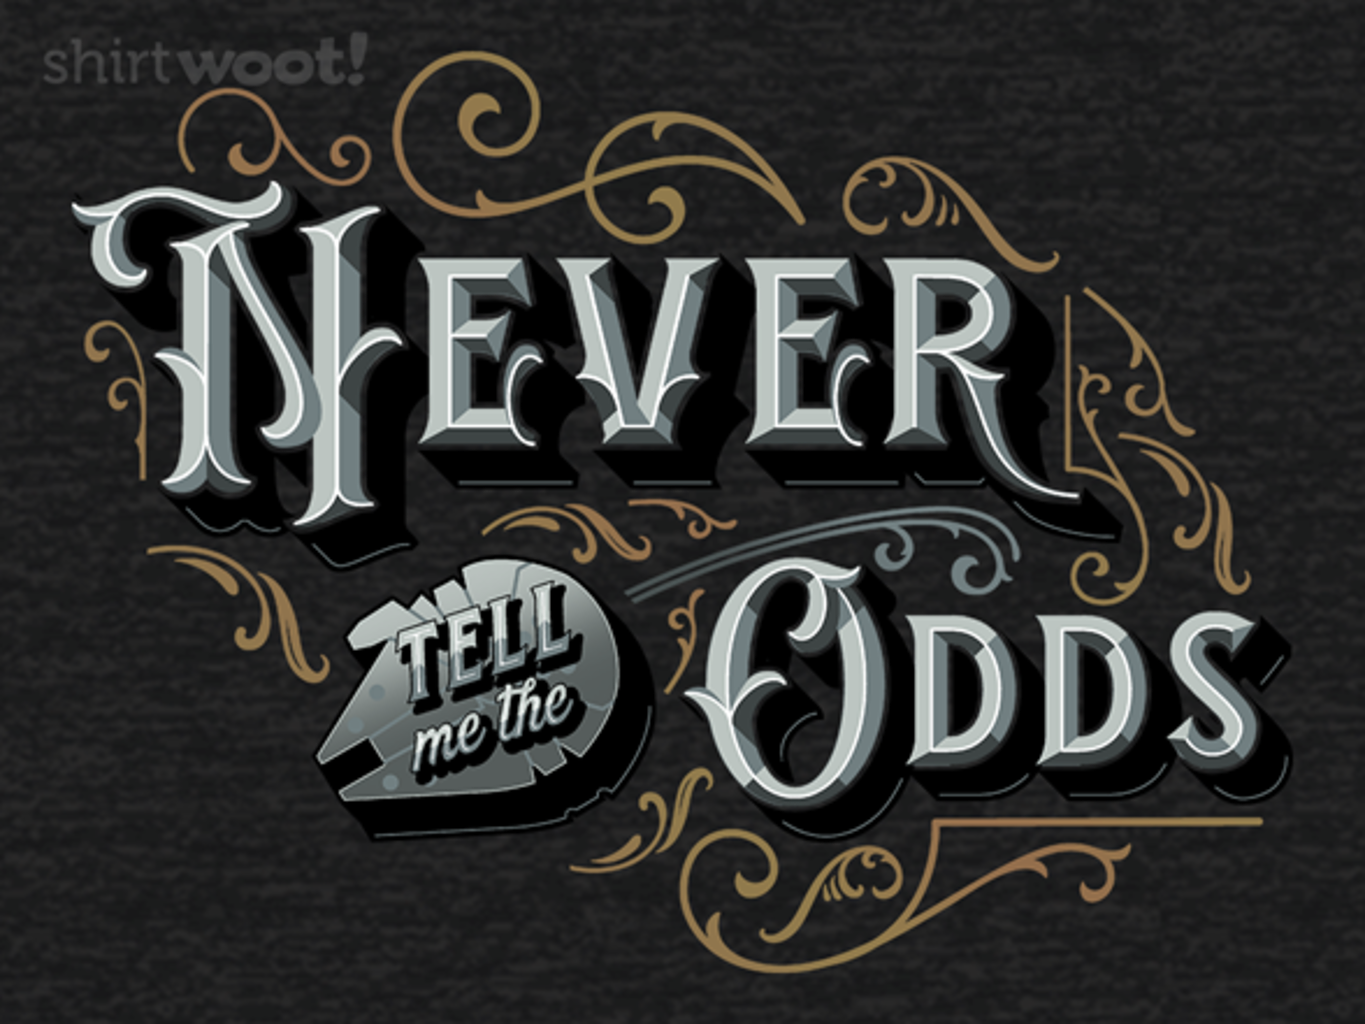 Woot!: The Odds